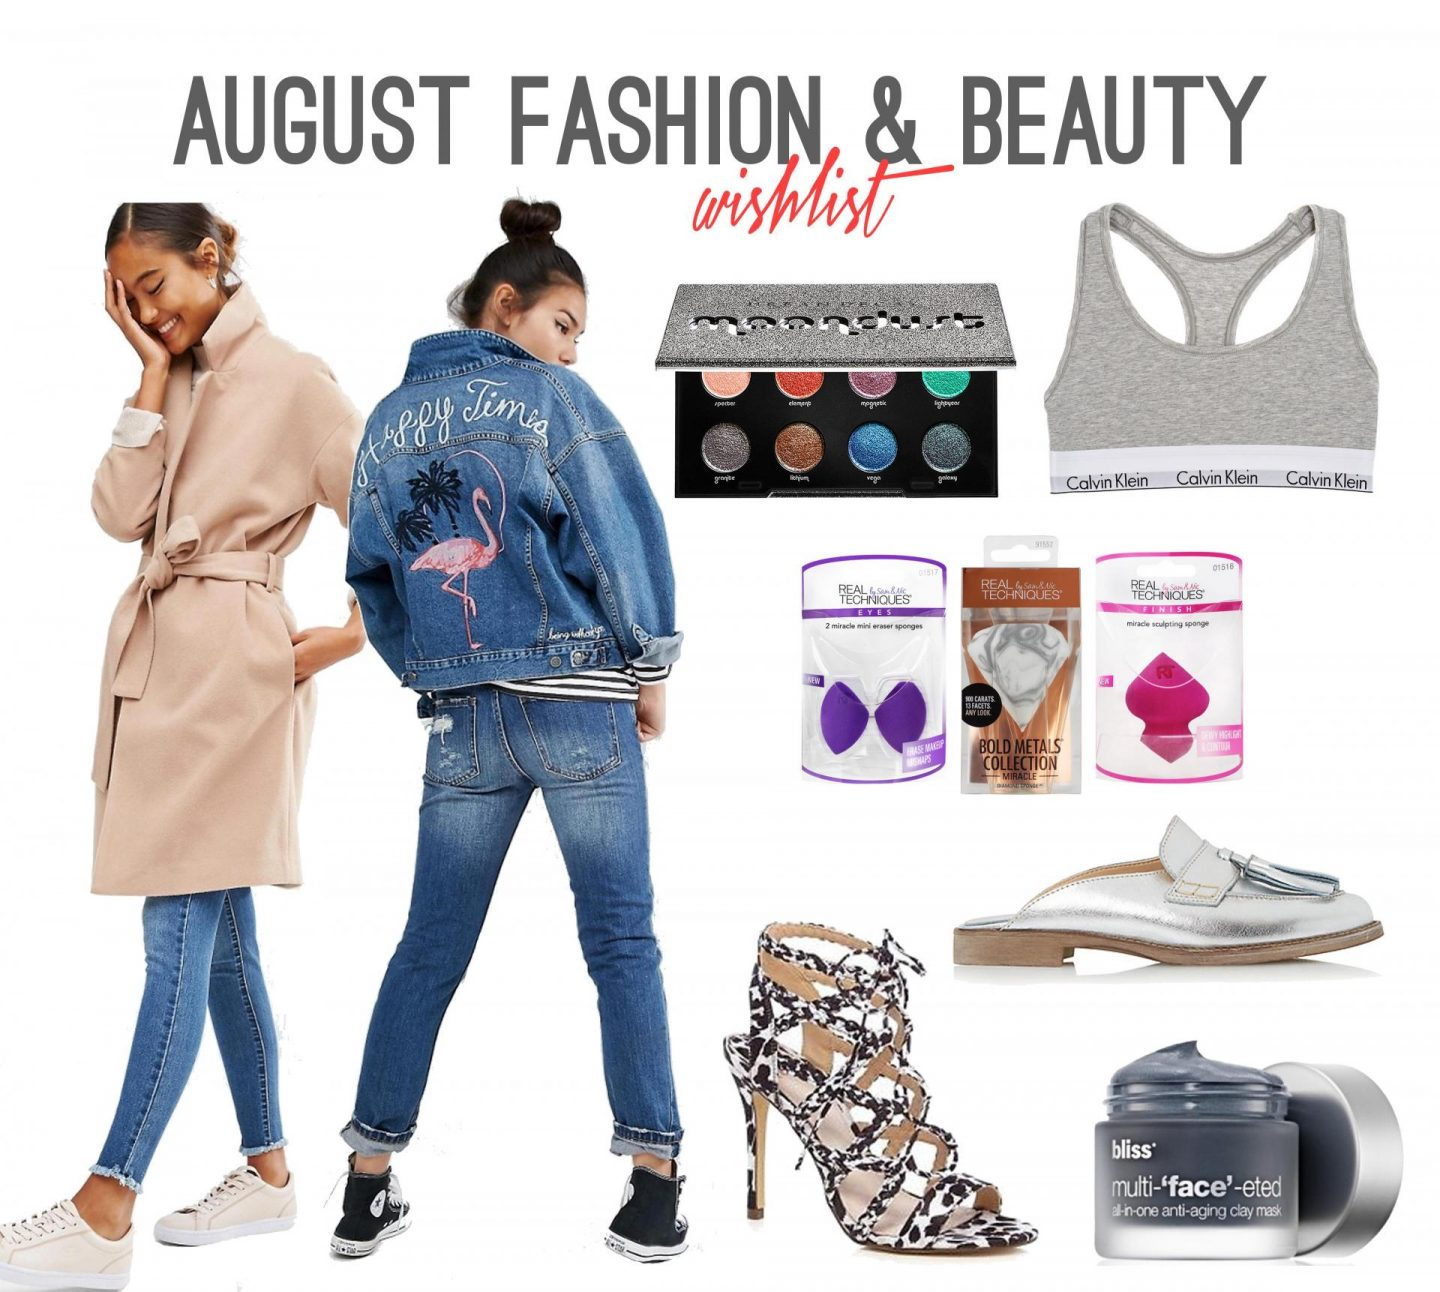 August Fashion and Beauty Wishlist ft. Dune, House Of Fraser, Bliss, Urban Decay - Rachel Nicole UK Blogger